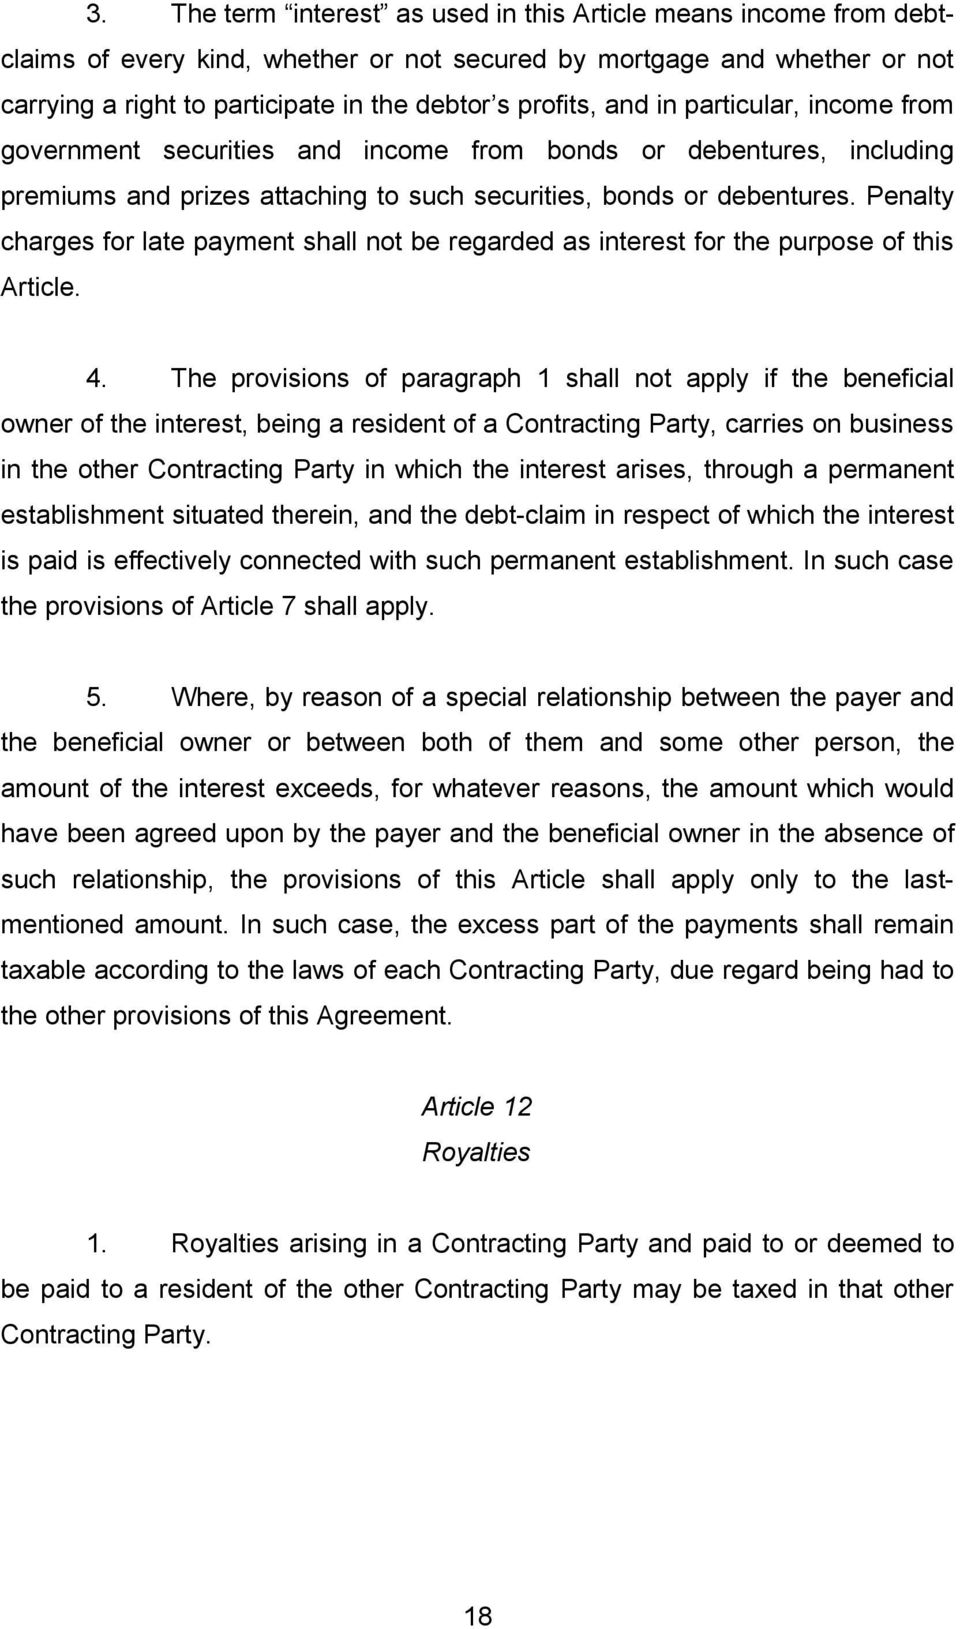 Penalty charges for late payment shall not be regarded as interest for the purpose of this Article. 4.